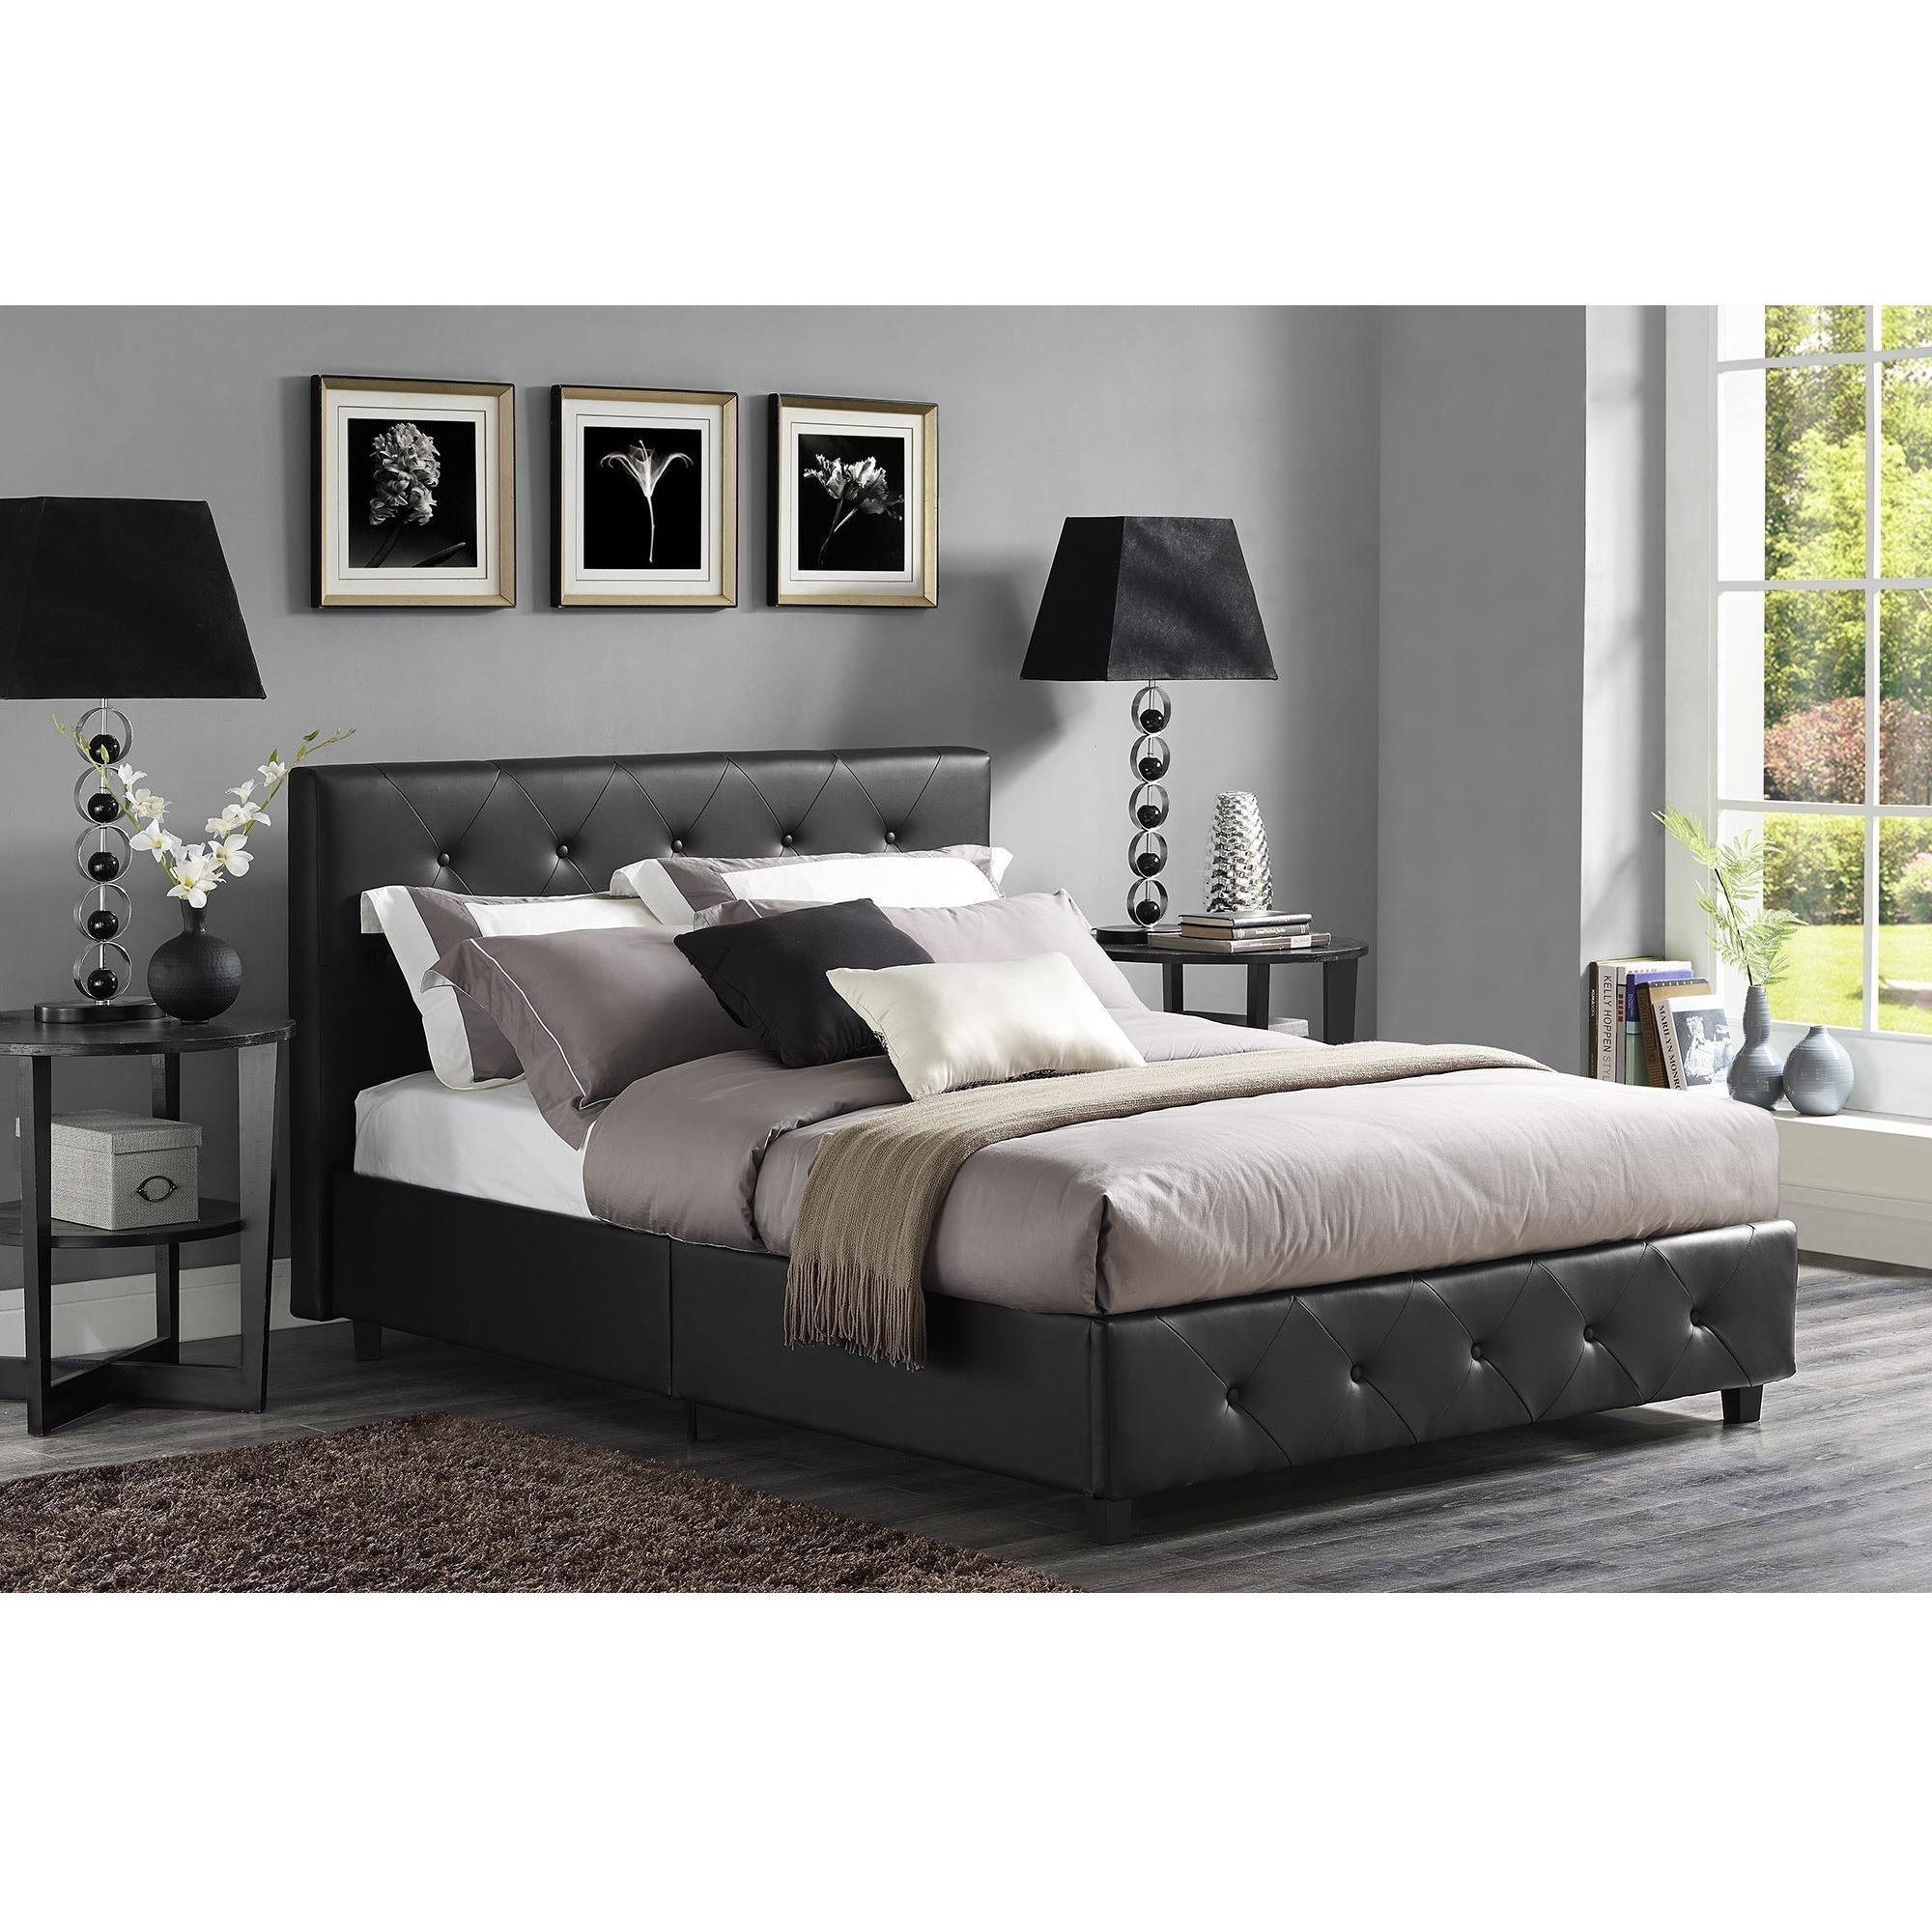 Wicker Park Claremont Black Faux Leather Upholstered Bed Modern